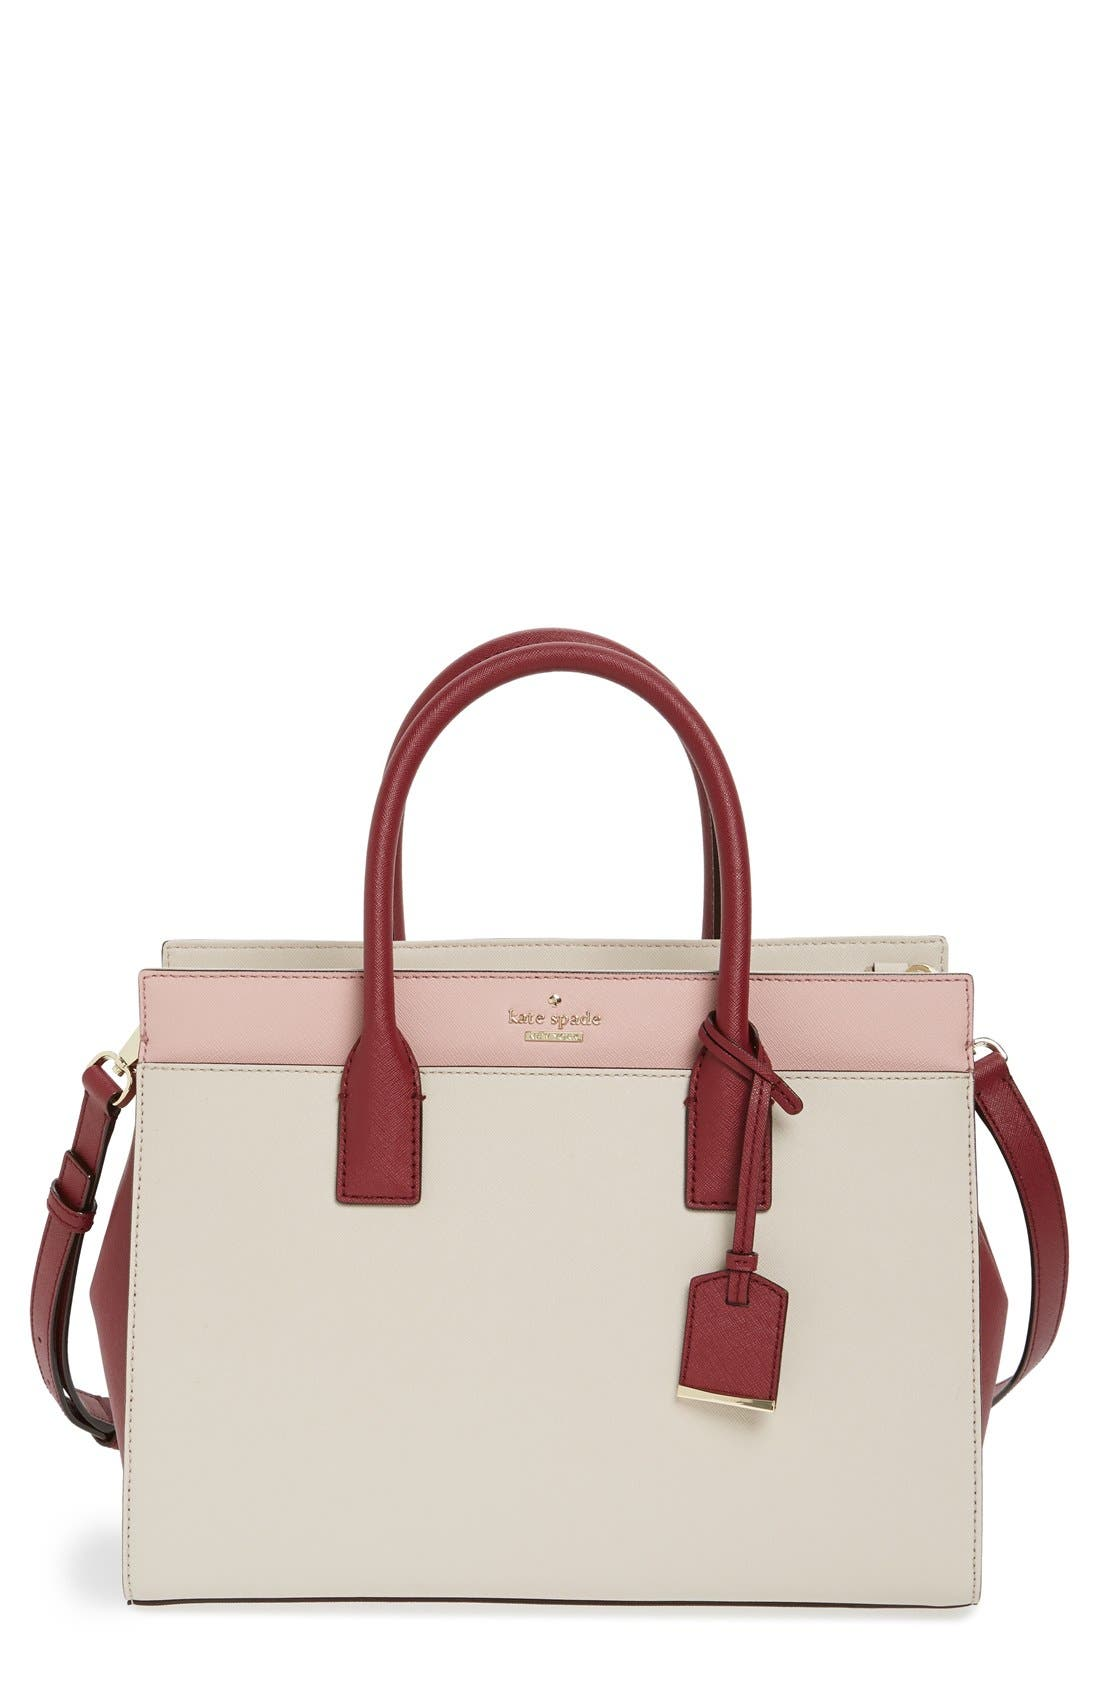 cameron street - candace leather satchel,                             Main thumbnail 21, color,